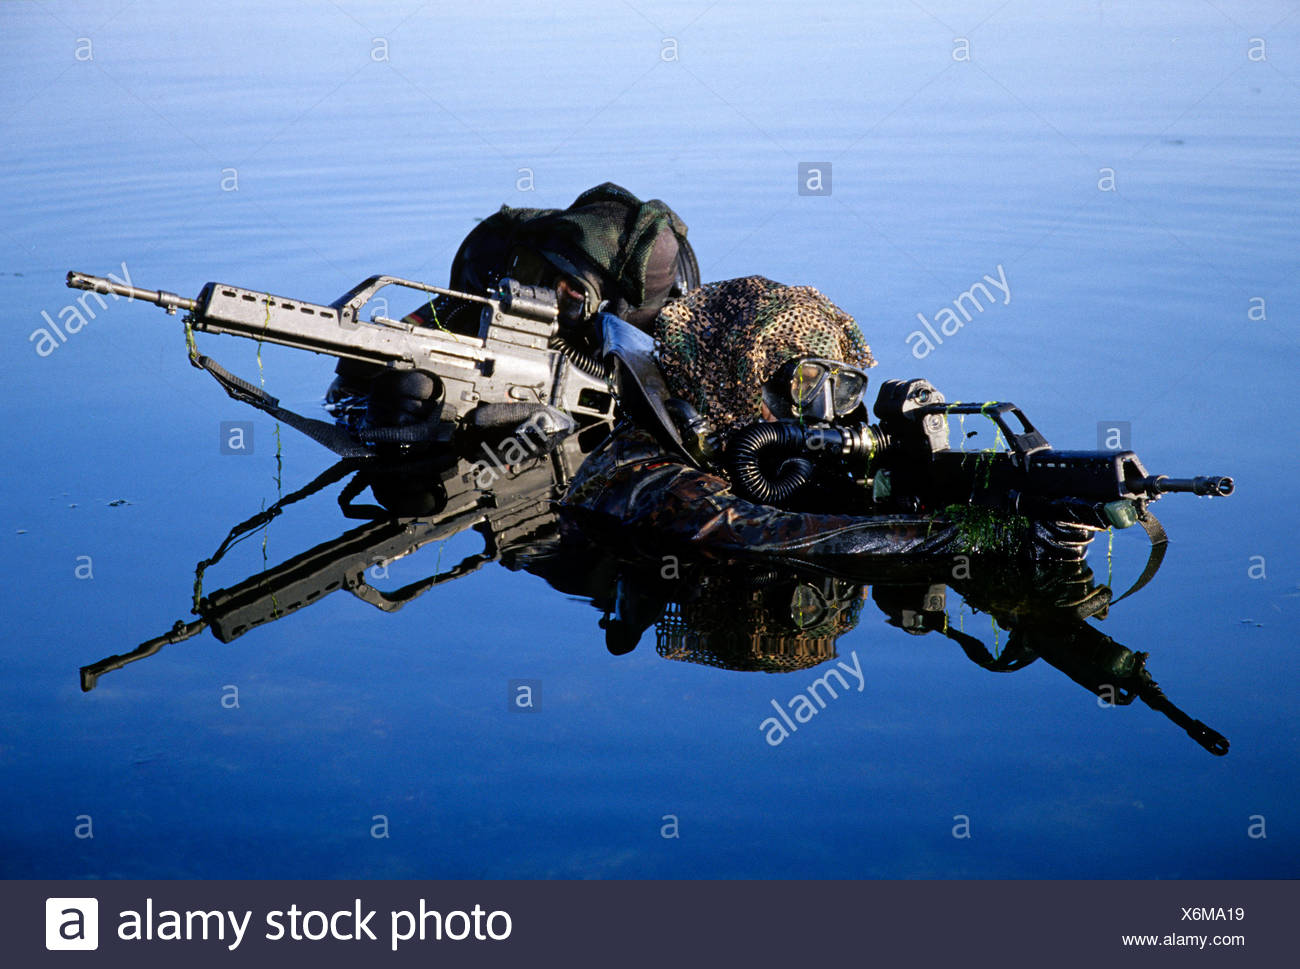 Two soldiers belonging to the Kampfschwimmerkompanie, combat swimmers, special unit of the German Navy practicing an attack on  - Stock Image